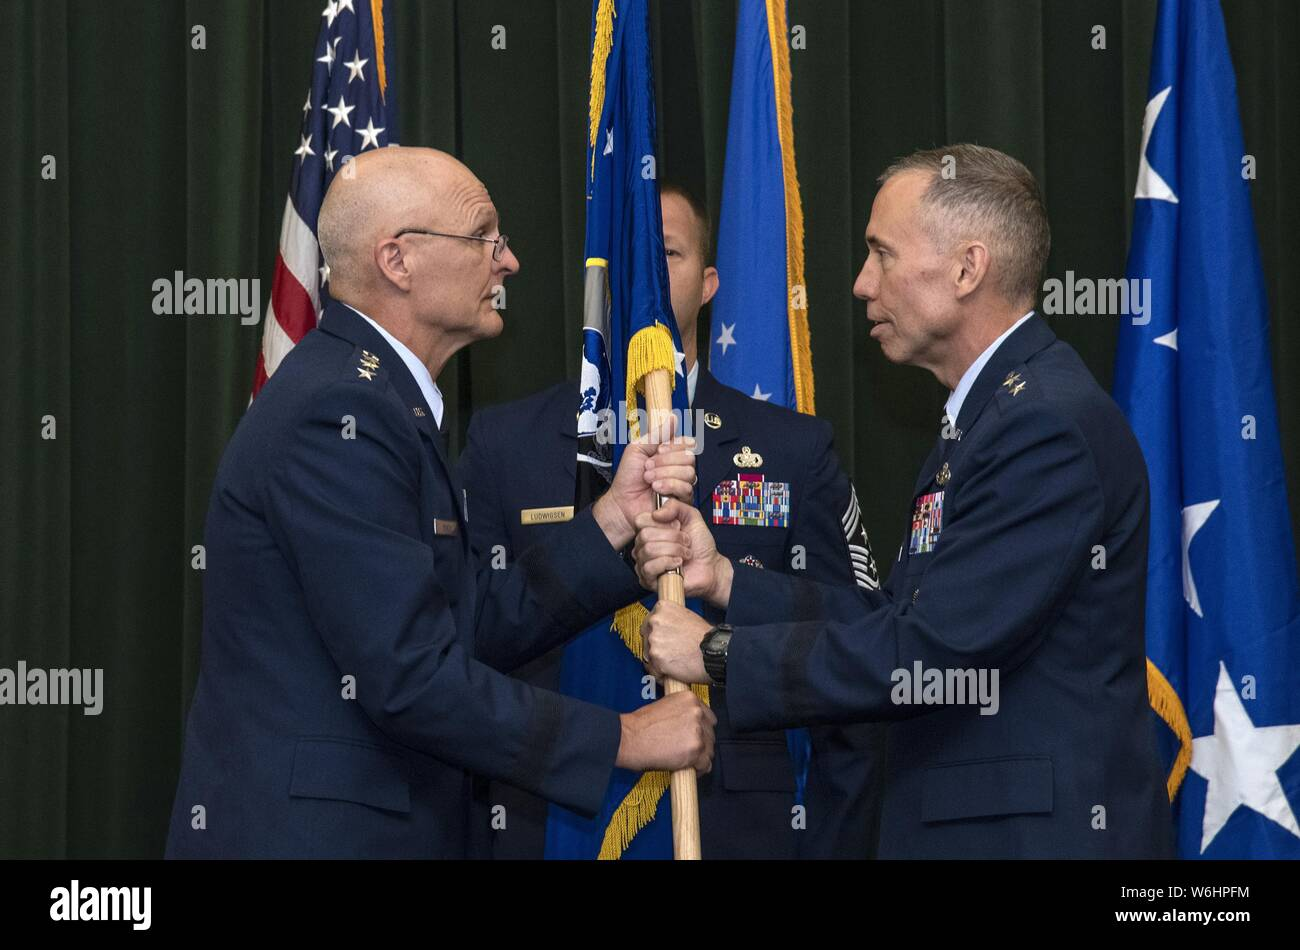 Maj. Gen. Tom Wilcox receives the unit flag from Gen. Arnold W. Bunch Jr. commander of Air Force Materiel Command, to become commander of the Air Force Installation and Mission Support Center July 25 during a ceremony at Joint Base San Antonio-Lackland, July 25, 2019. (U.S. Air Force photo by Johnny Saldivar). () Stock Photo